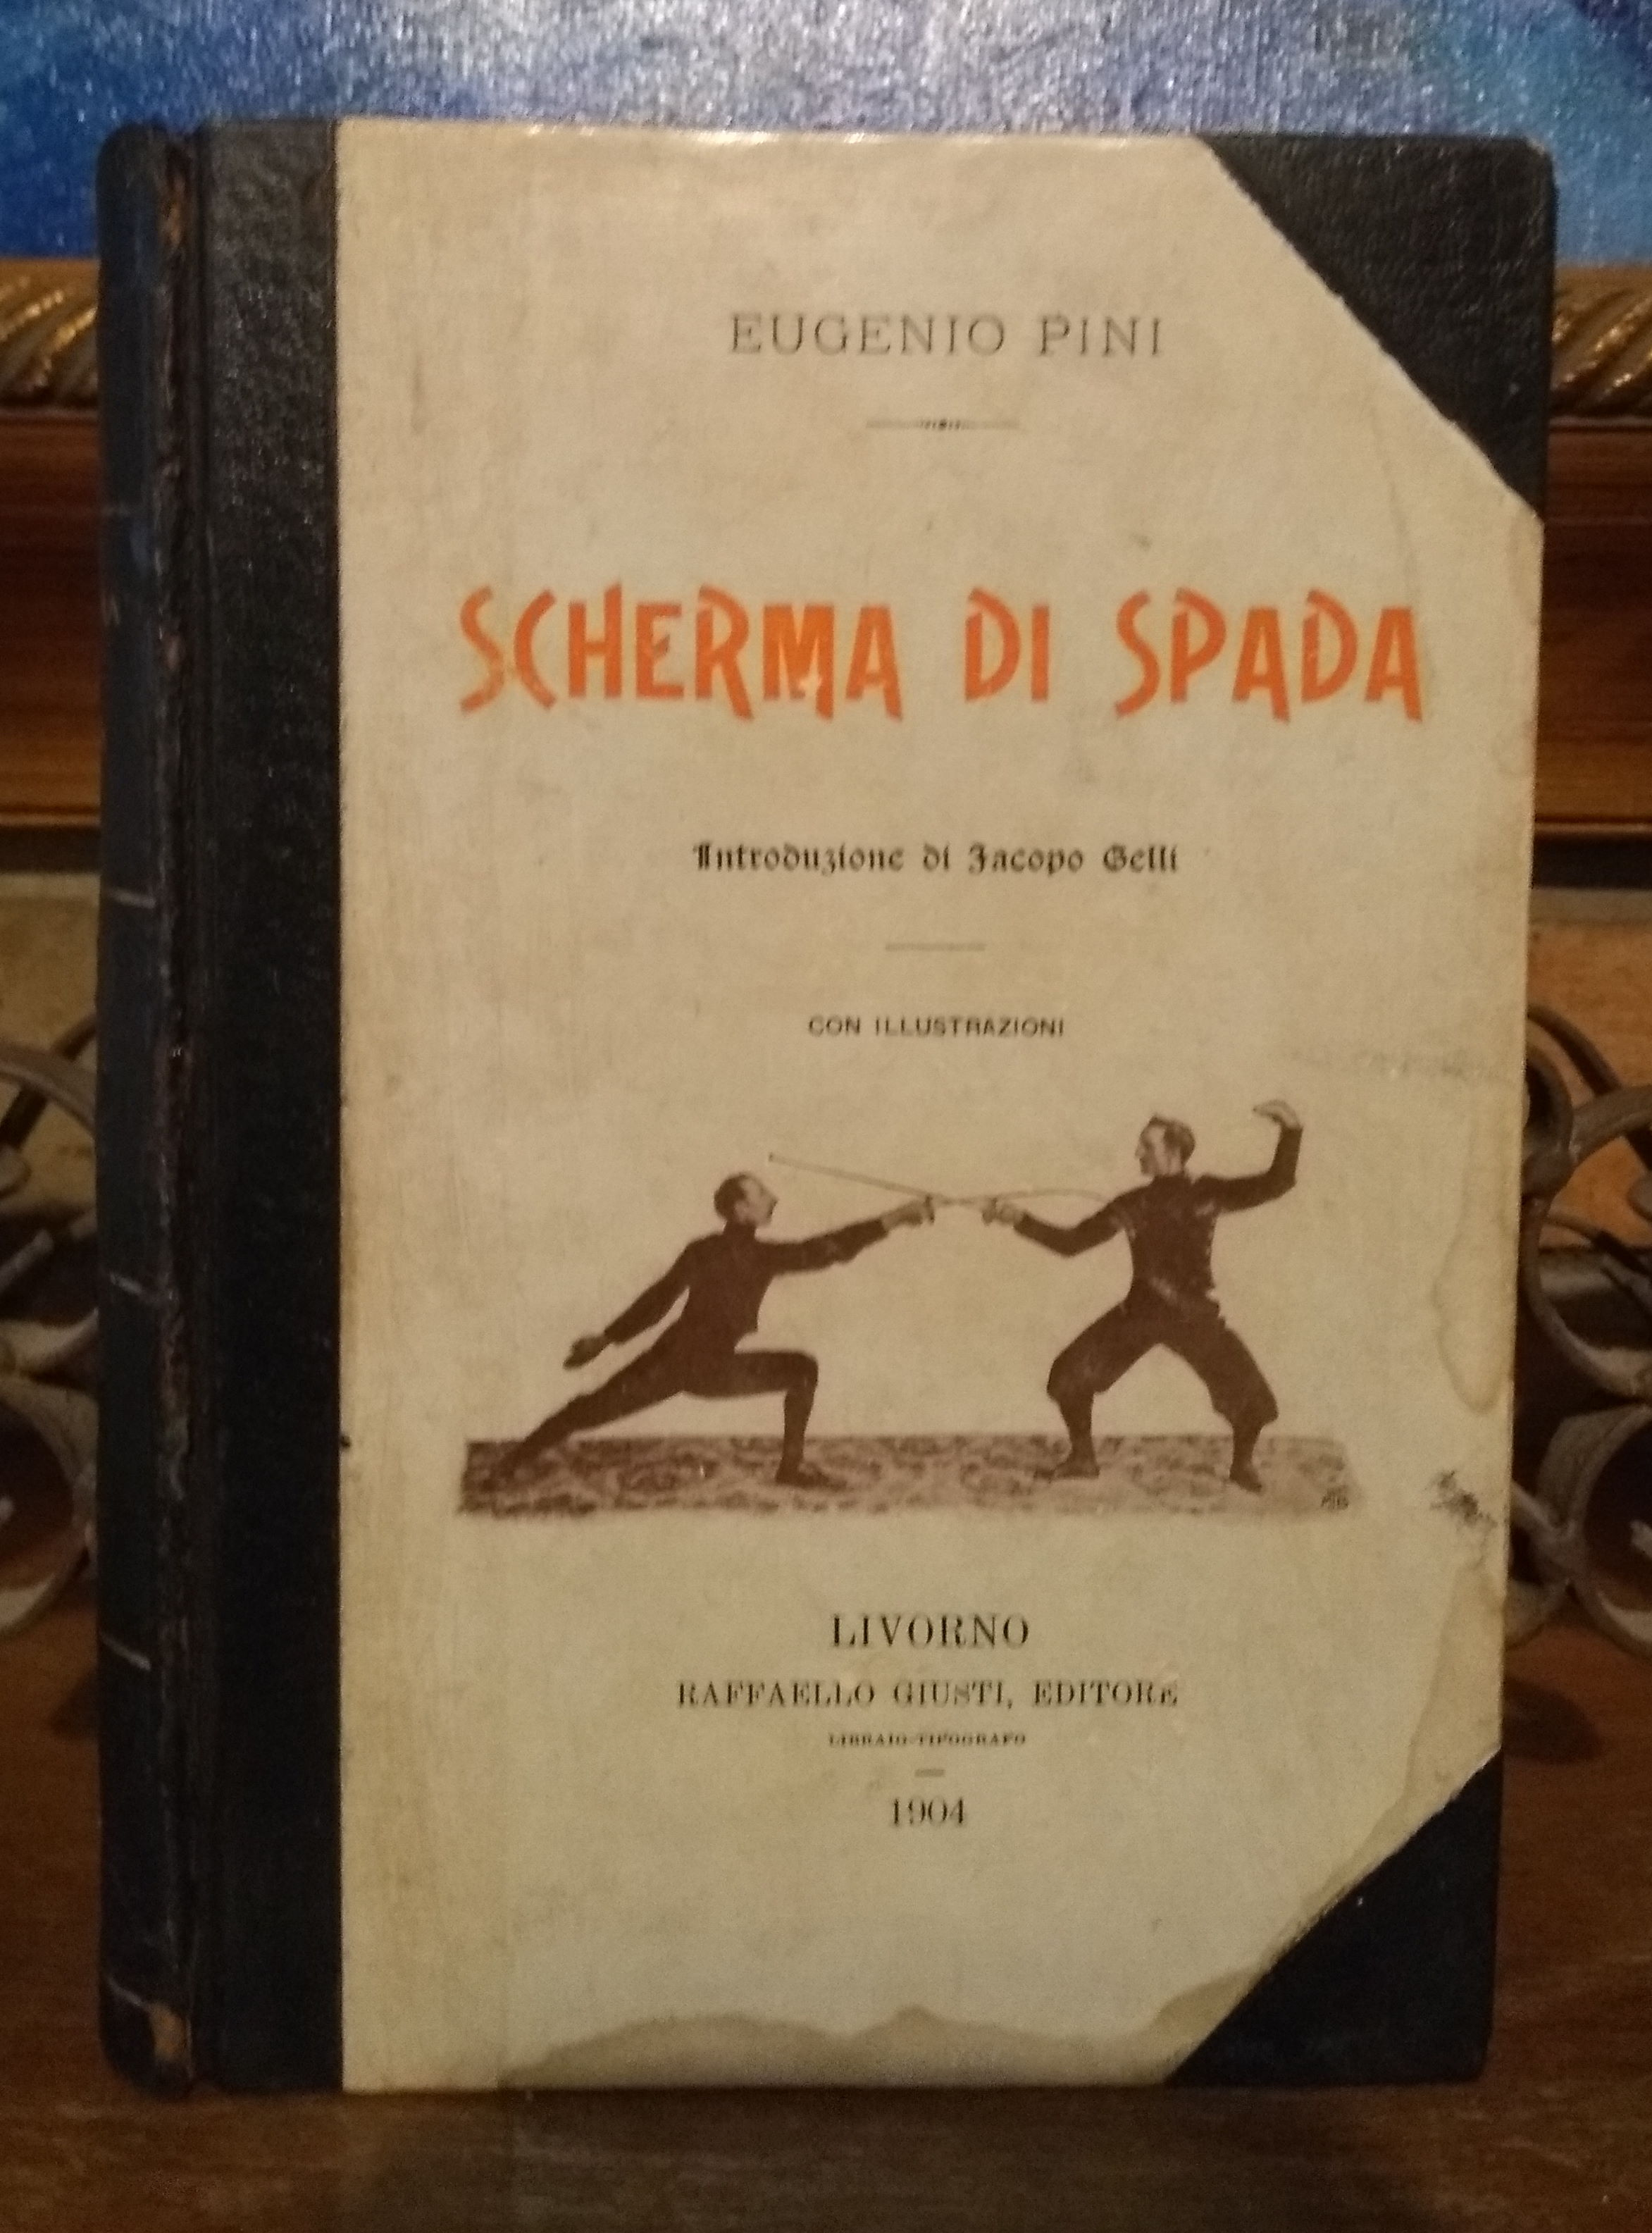 Spada by Pini